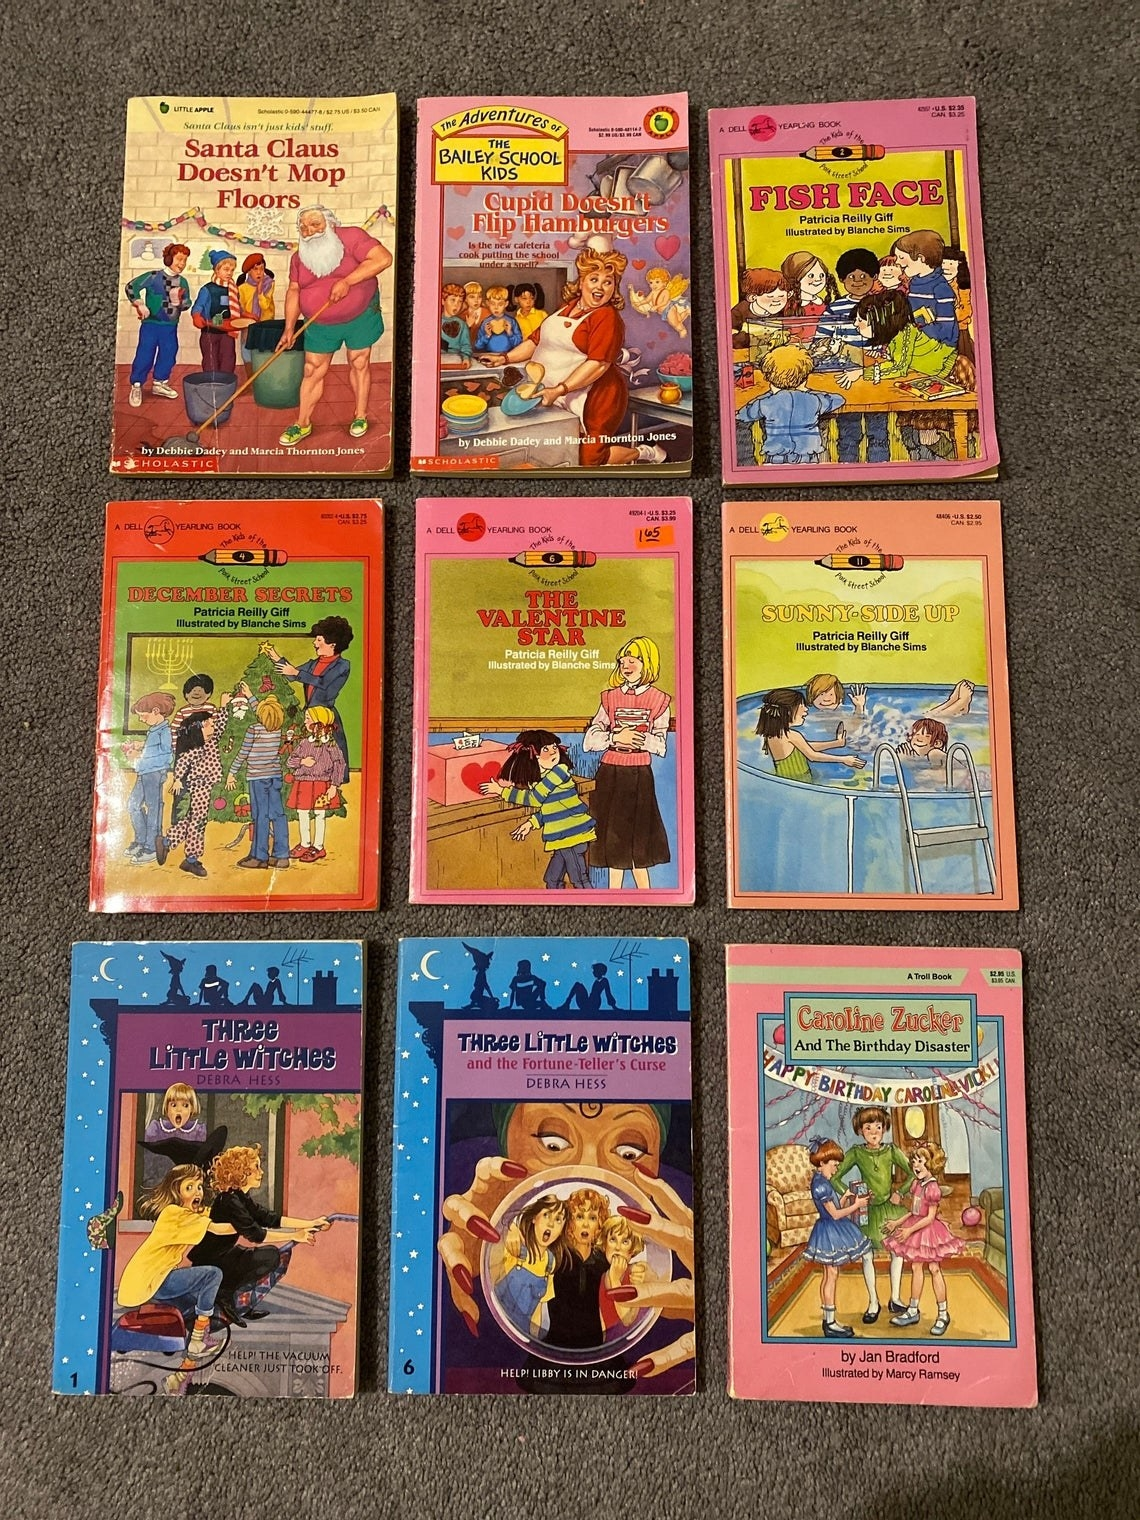 A collection of nine different book series from the late '80s and early '90s.